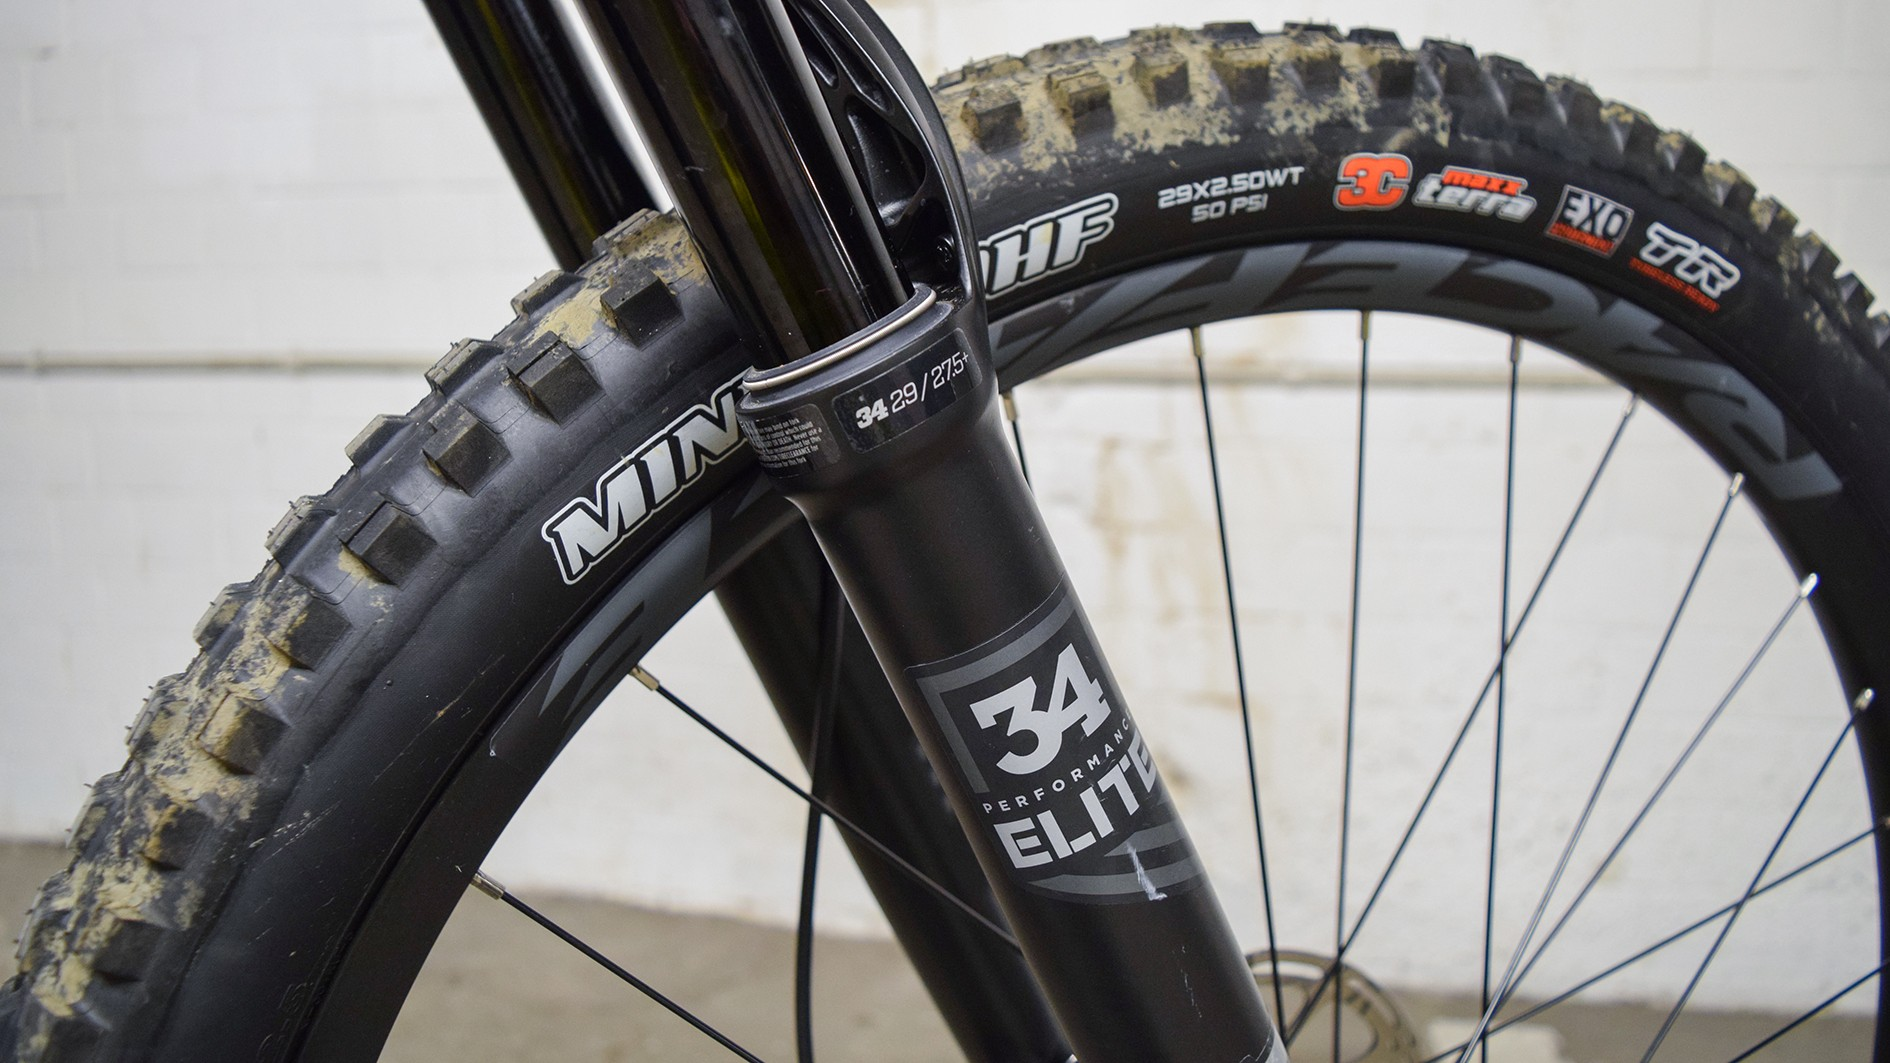 Fox 34 Elite forks